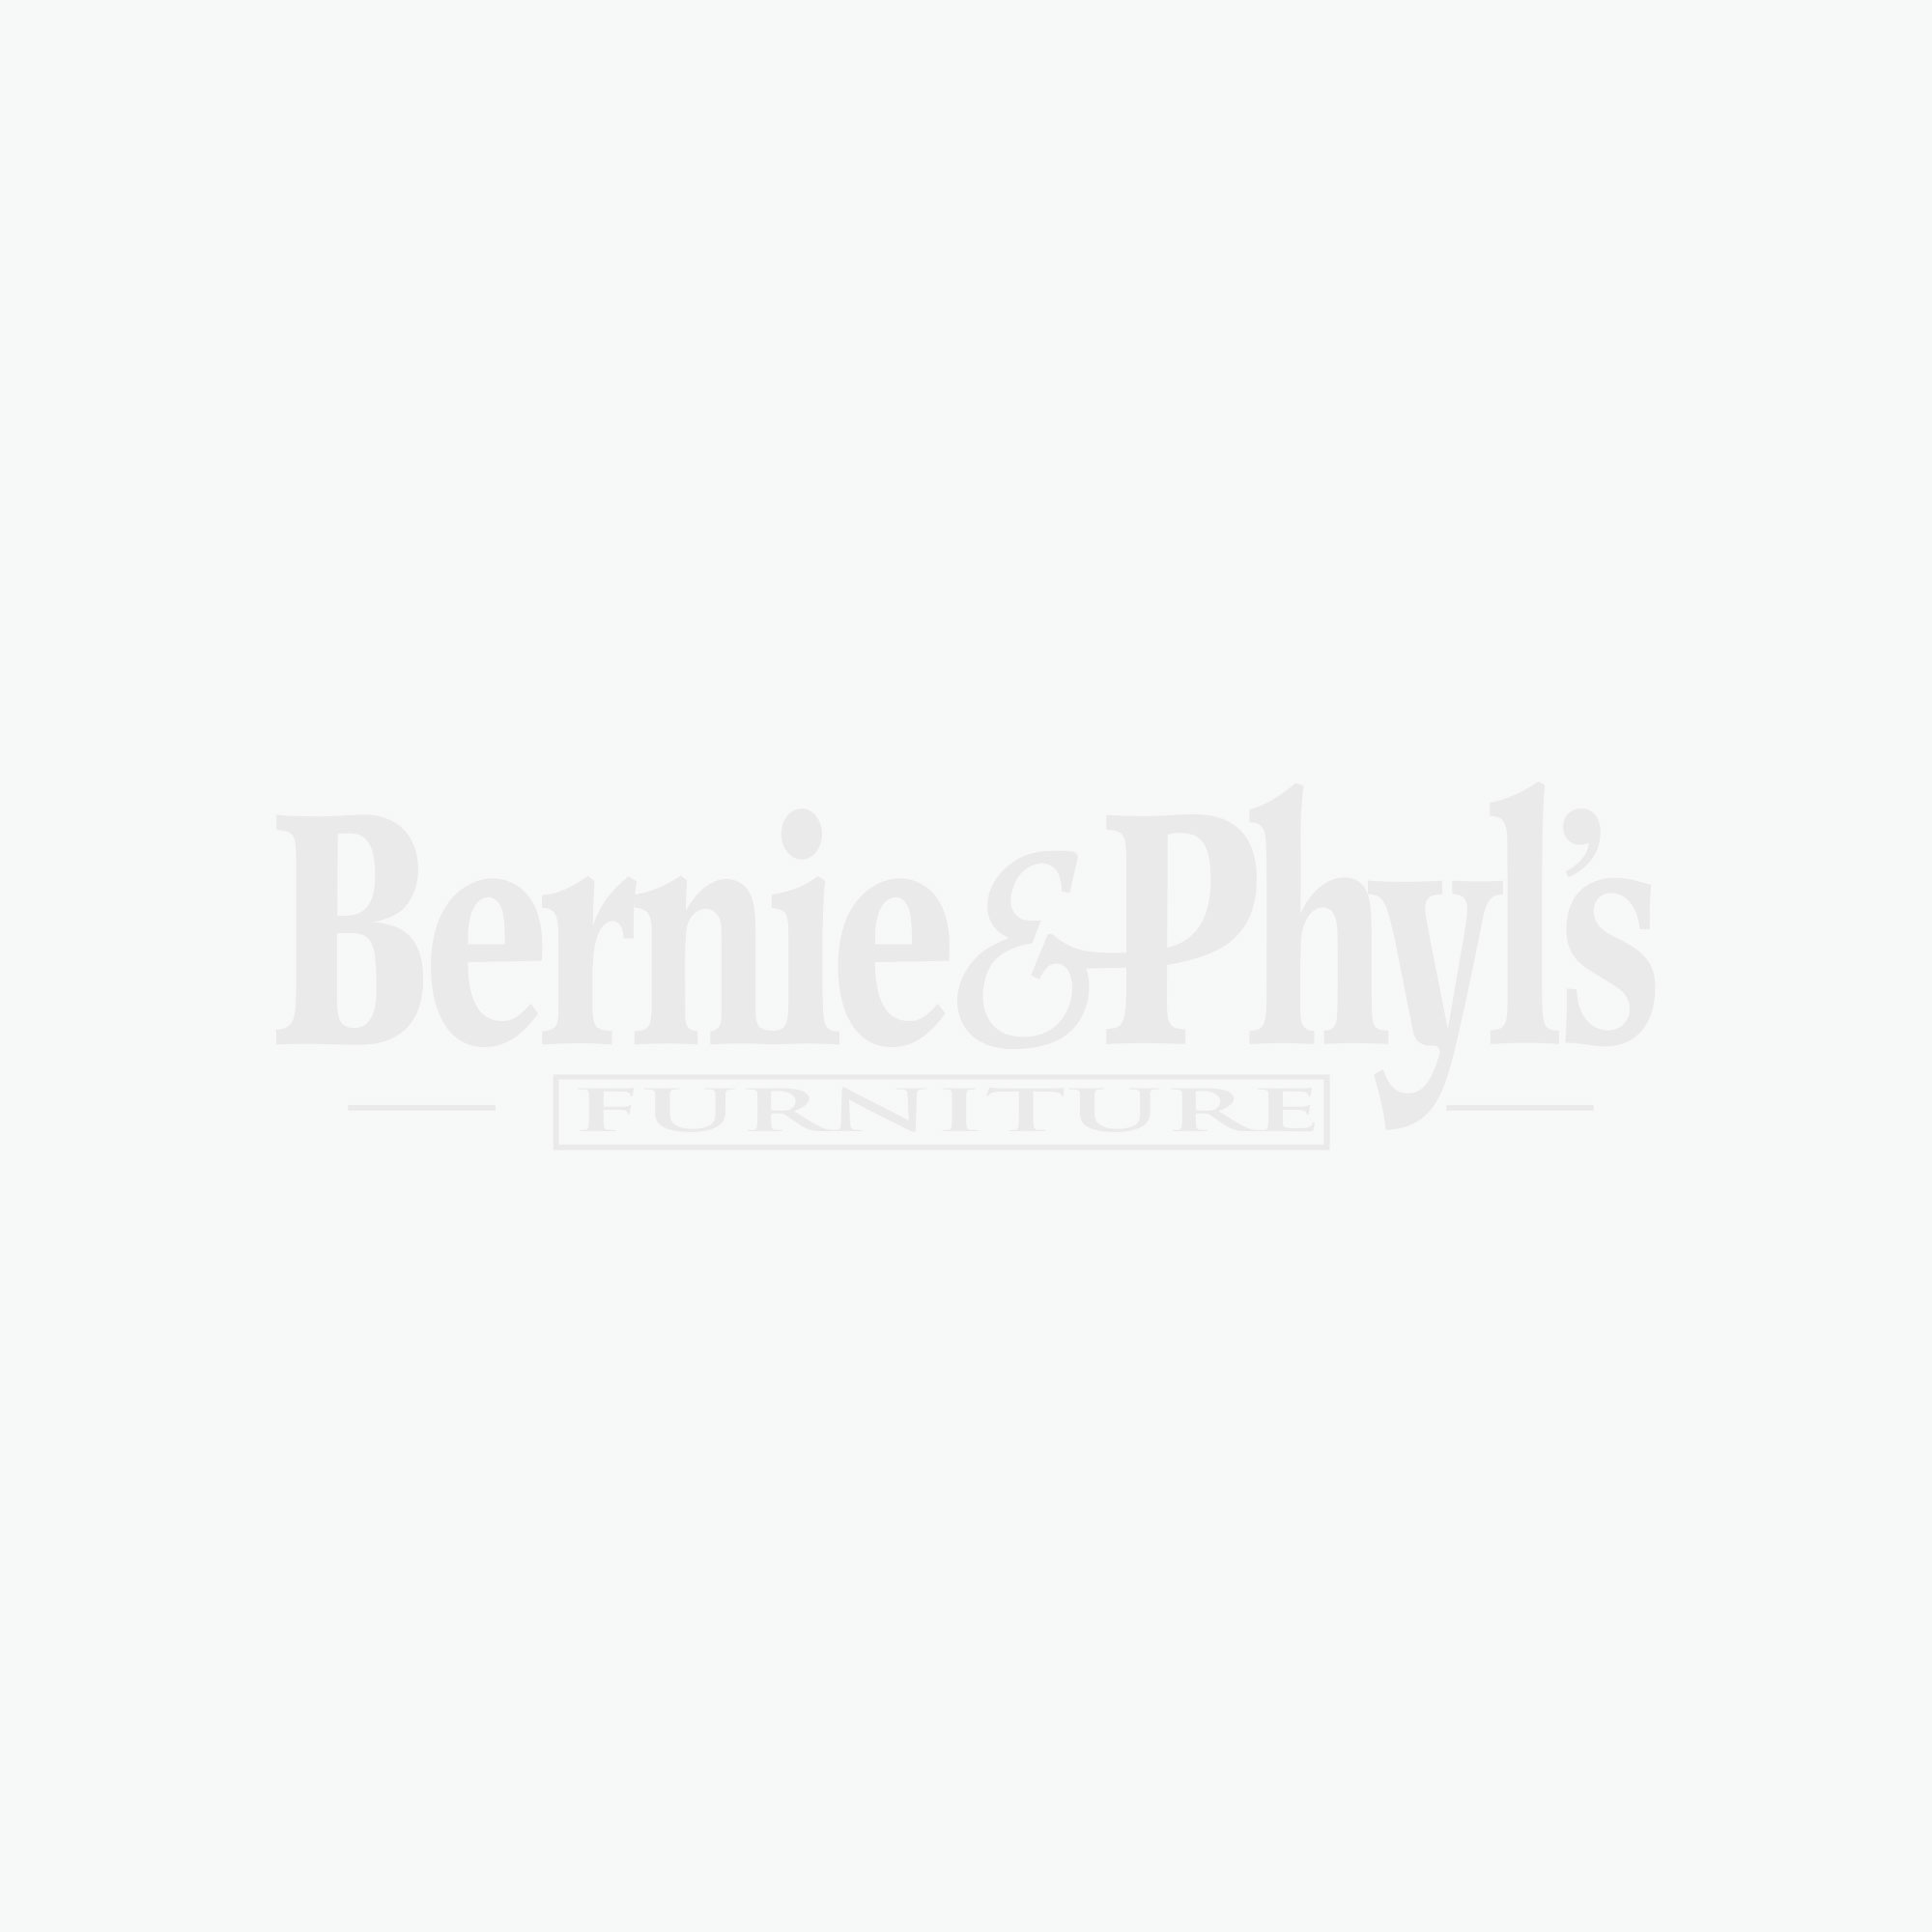 Calabria Wall Mount Wine Rack - (Set of 1) - HZ1010 - by Southern Enterprises